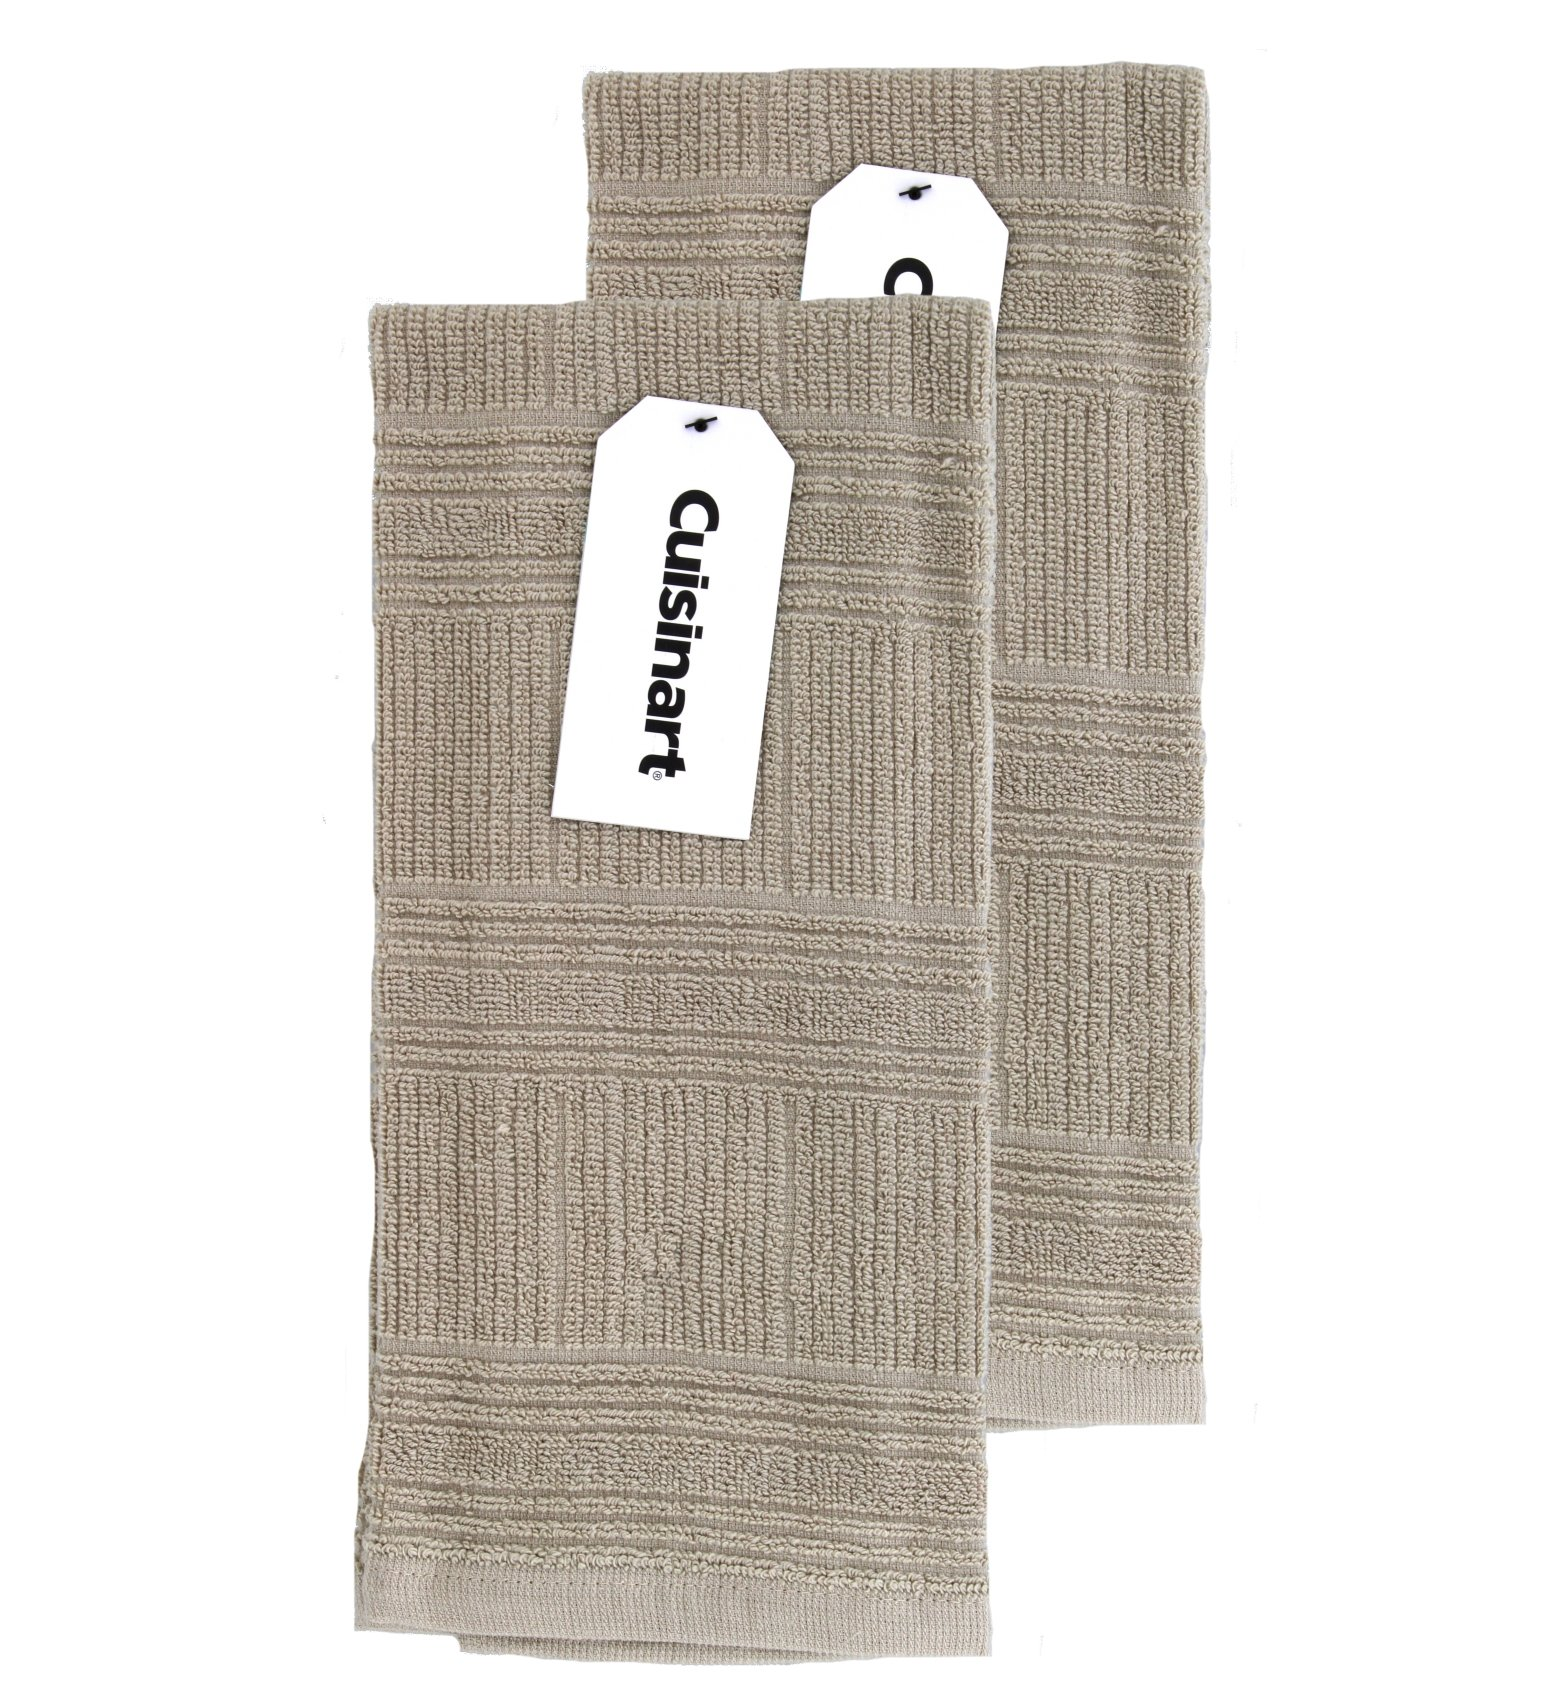 Cuisinart Kitchen, Hand and Dish Towels - Premium 100% Cotton Terry, Tan – Soft, Absorbent, Quick Drying and Machine Washable Tea Towels – Stacked, Set of 2, 16 x 26 Inches